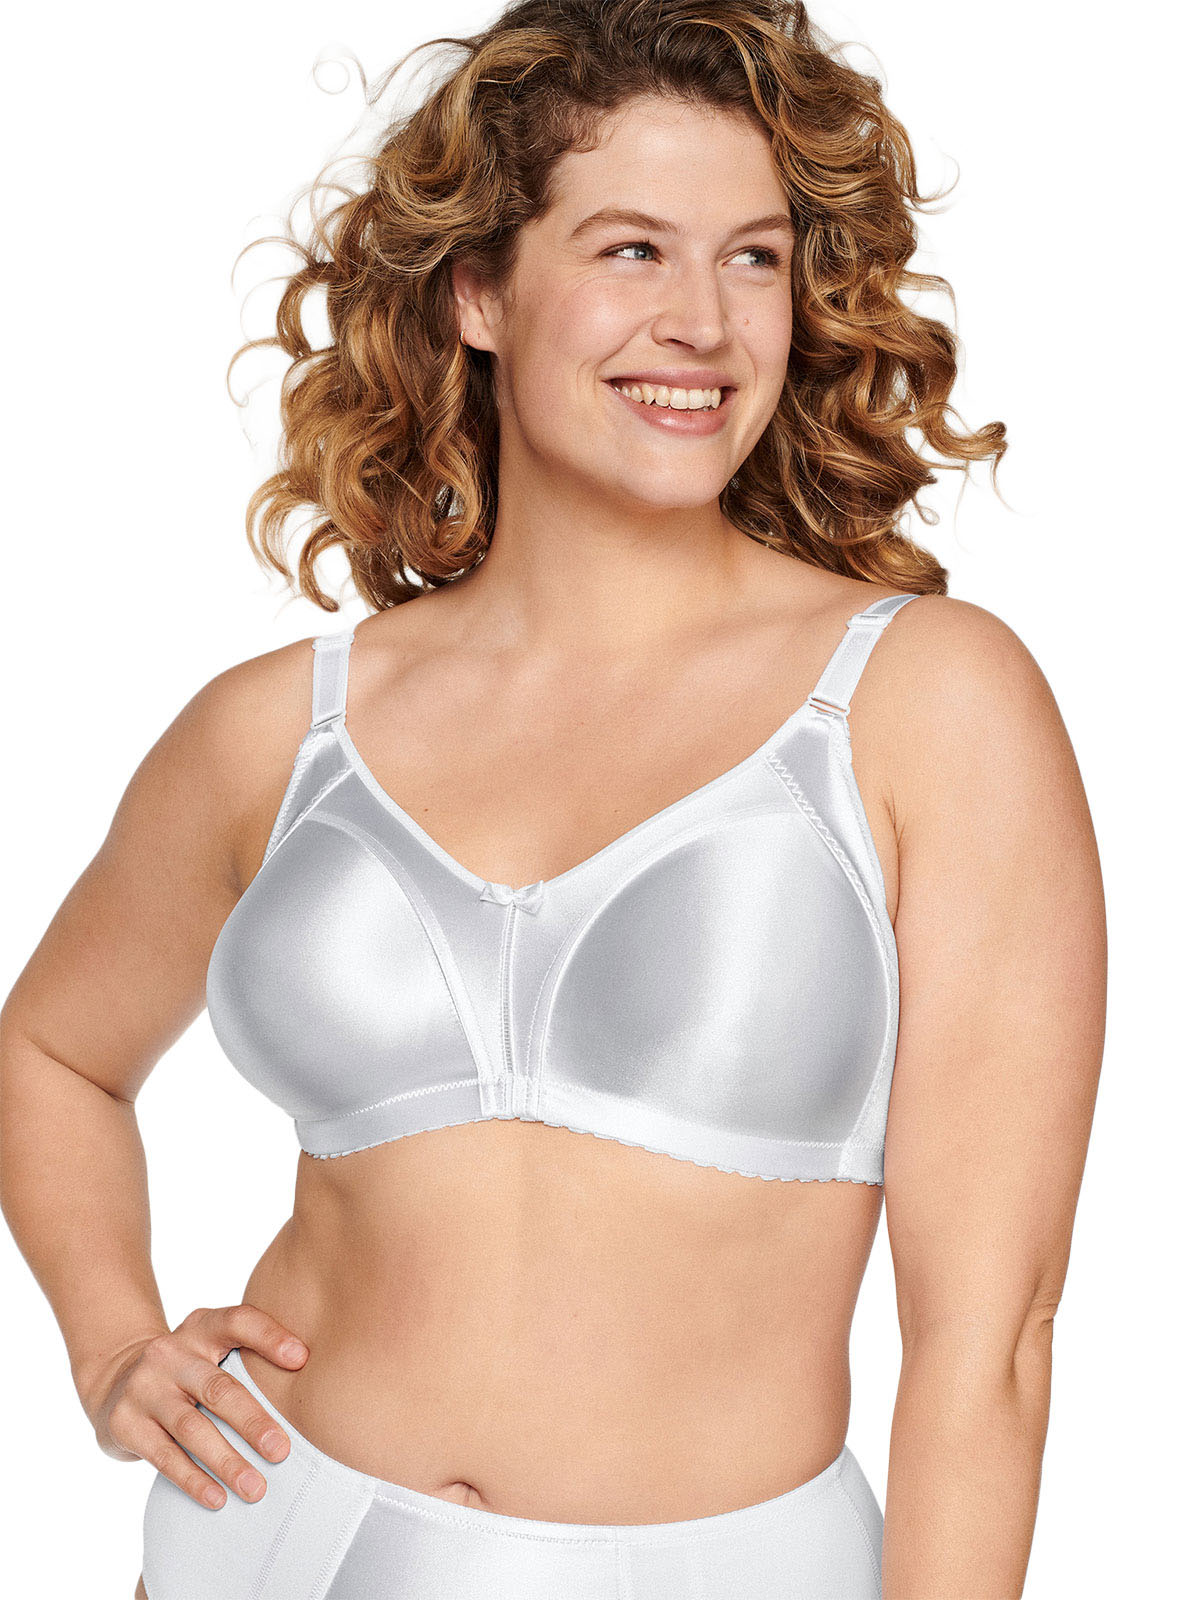 Naturana Minimiser Bra 805063 Pack of 2